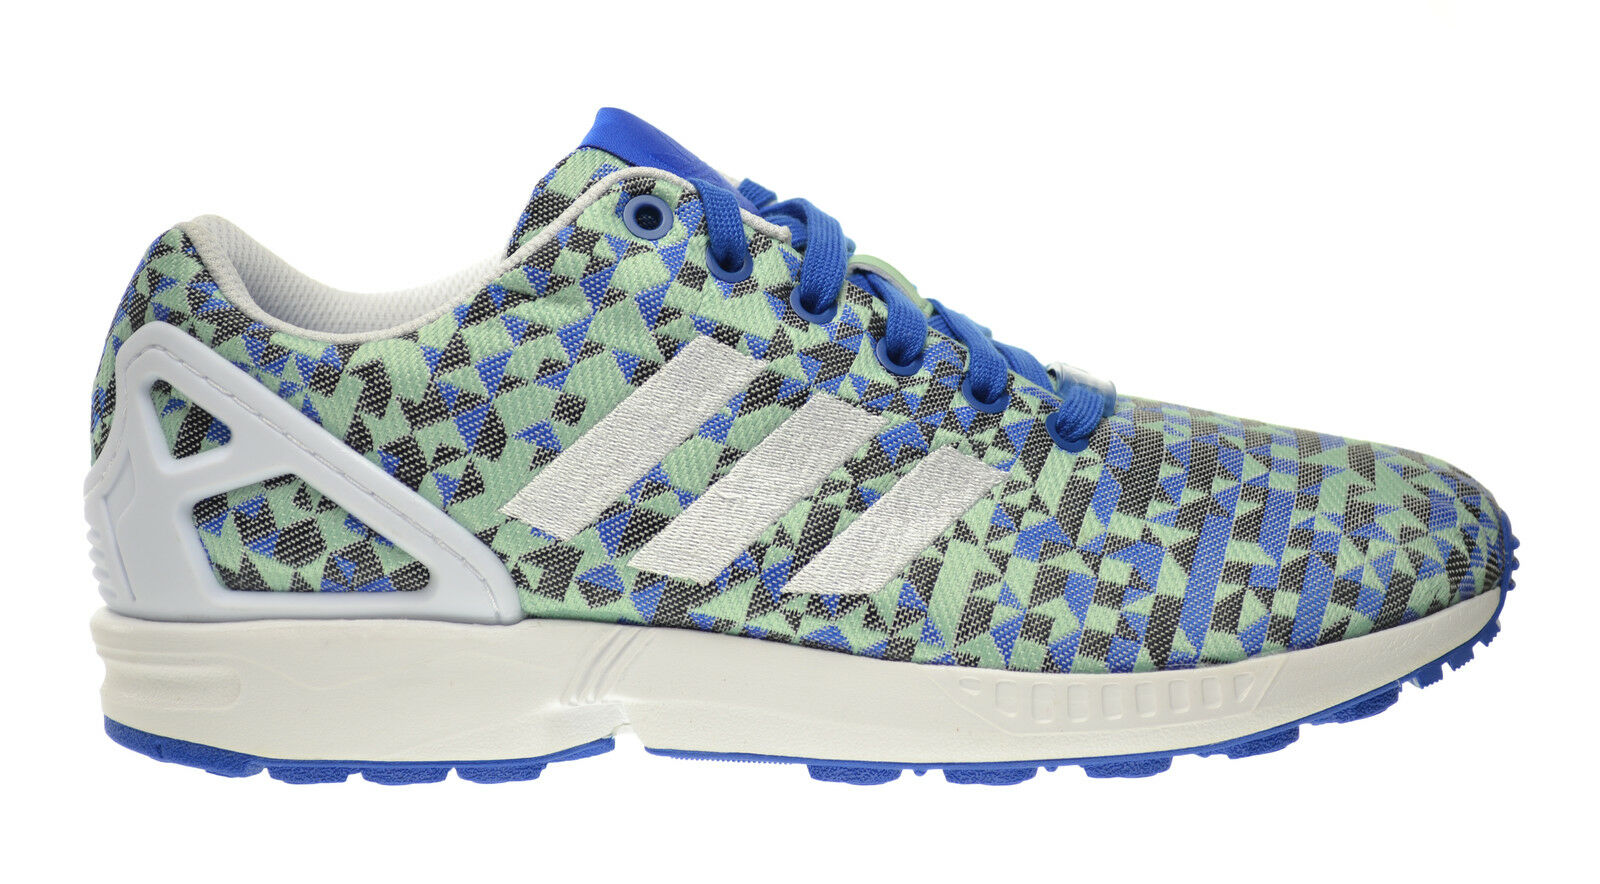 Adidas ZX Weave Men's shoes bluee White Black b34474